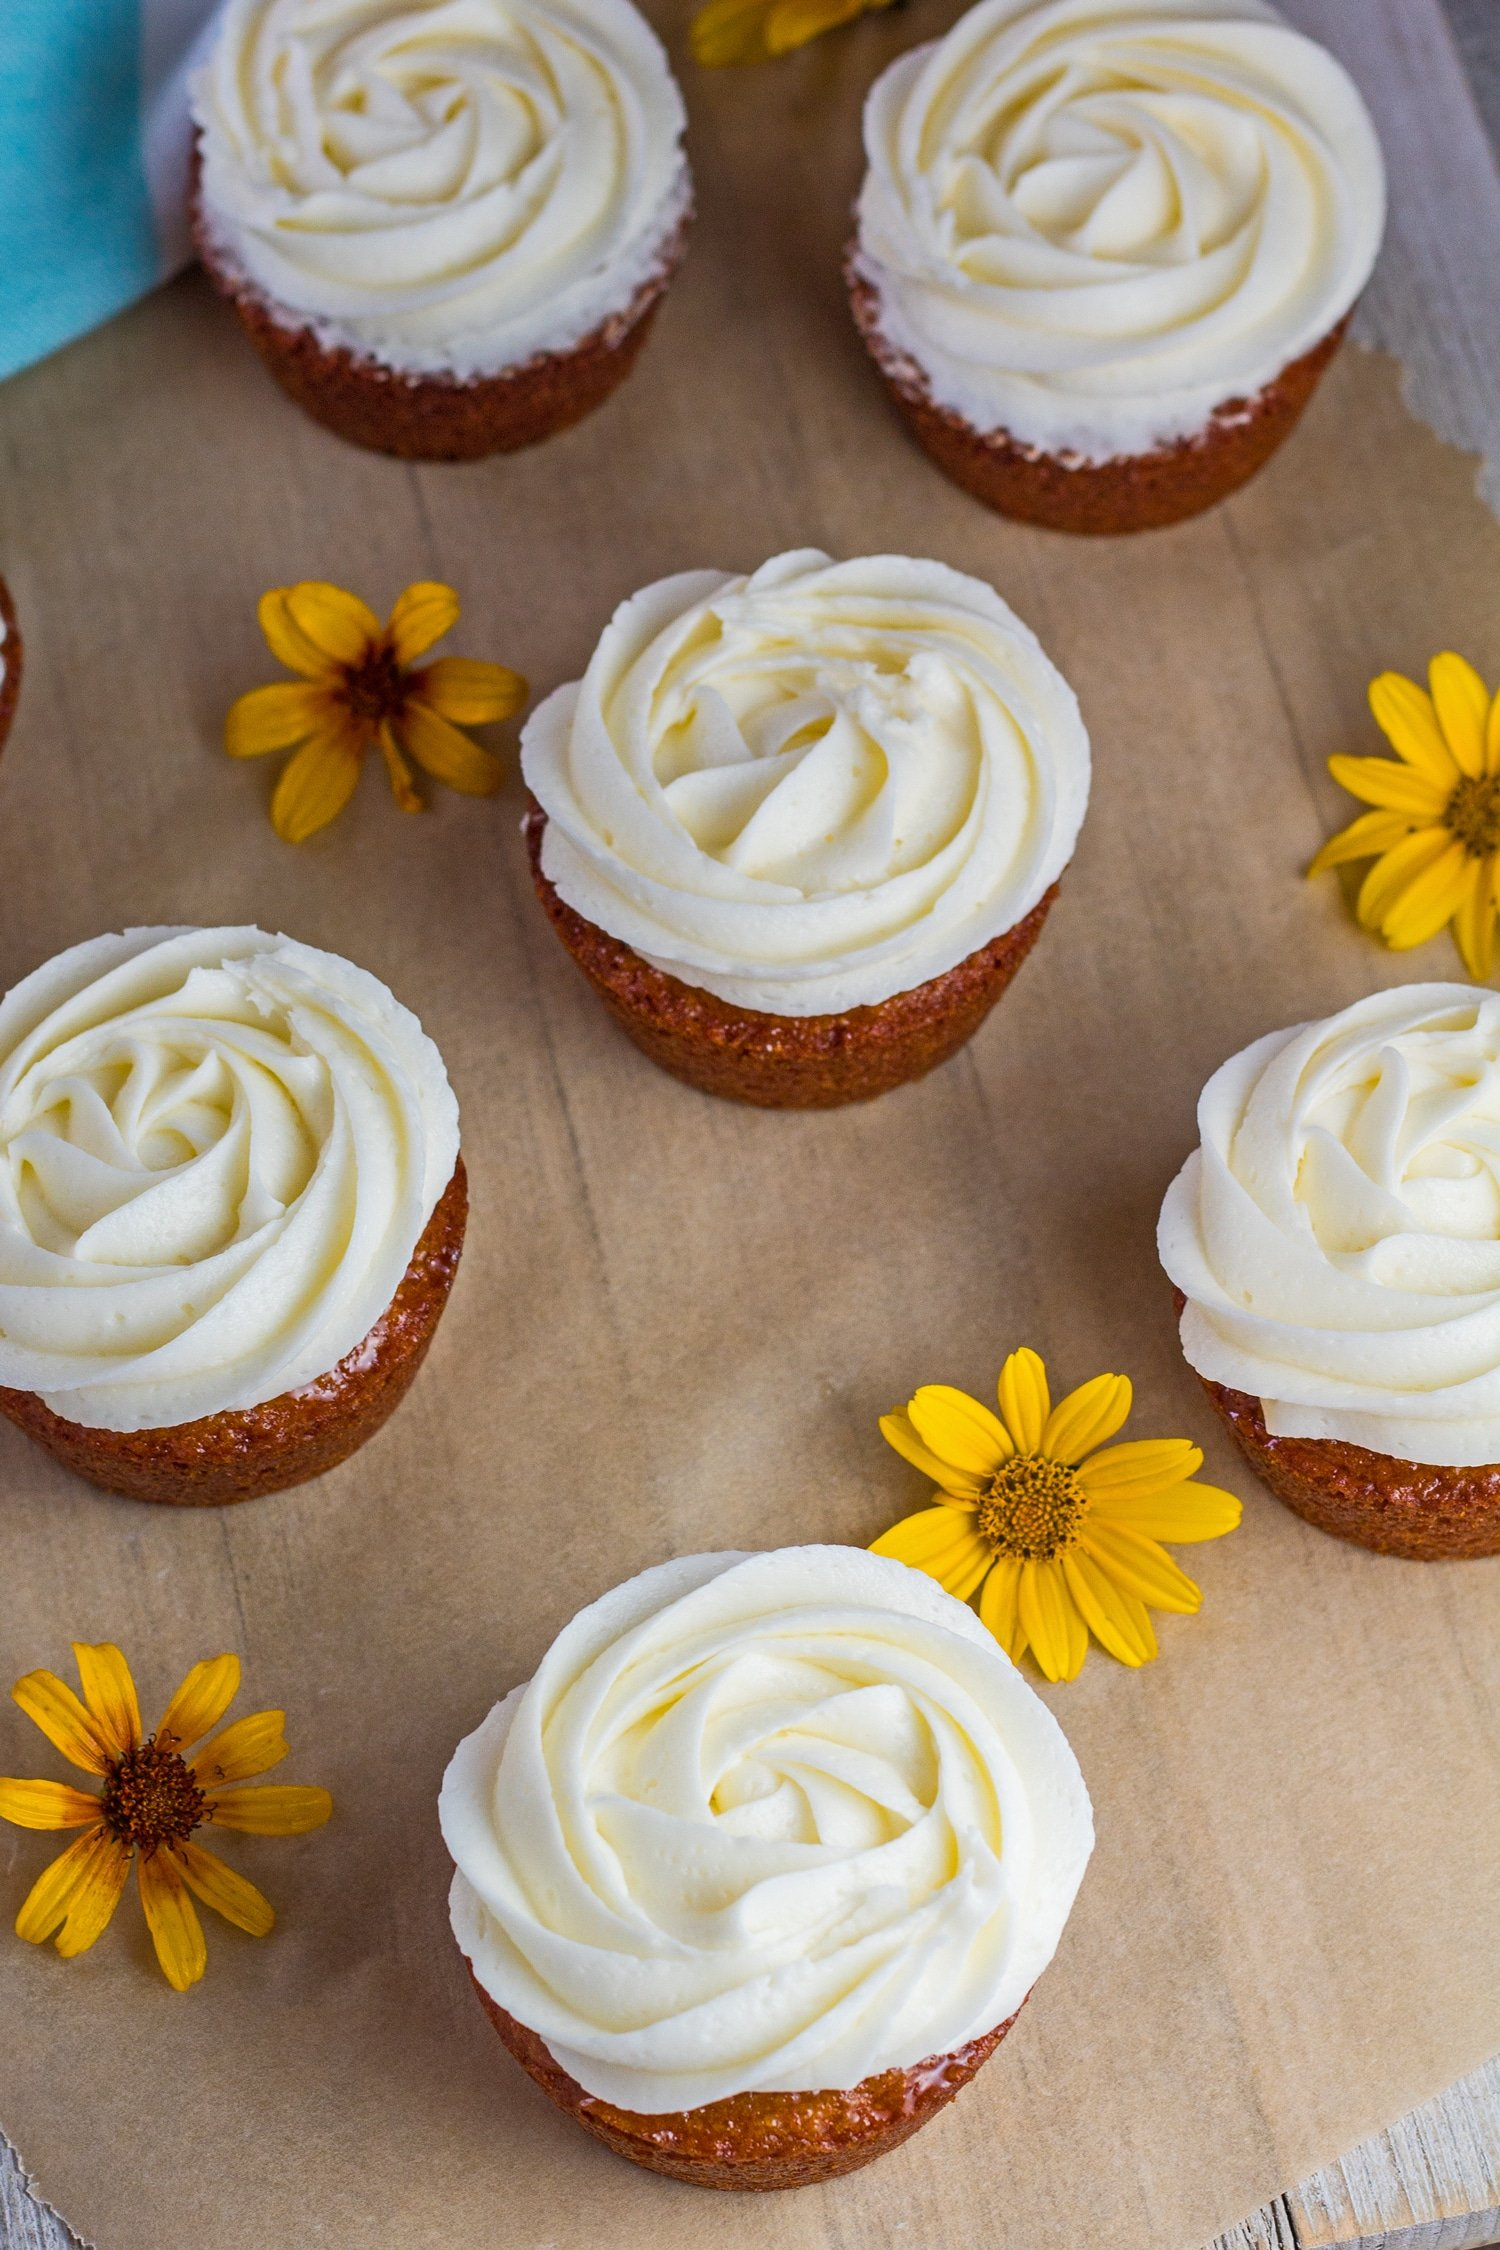 delicious honey cakes topped with orange frosting from an angled overhead view